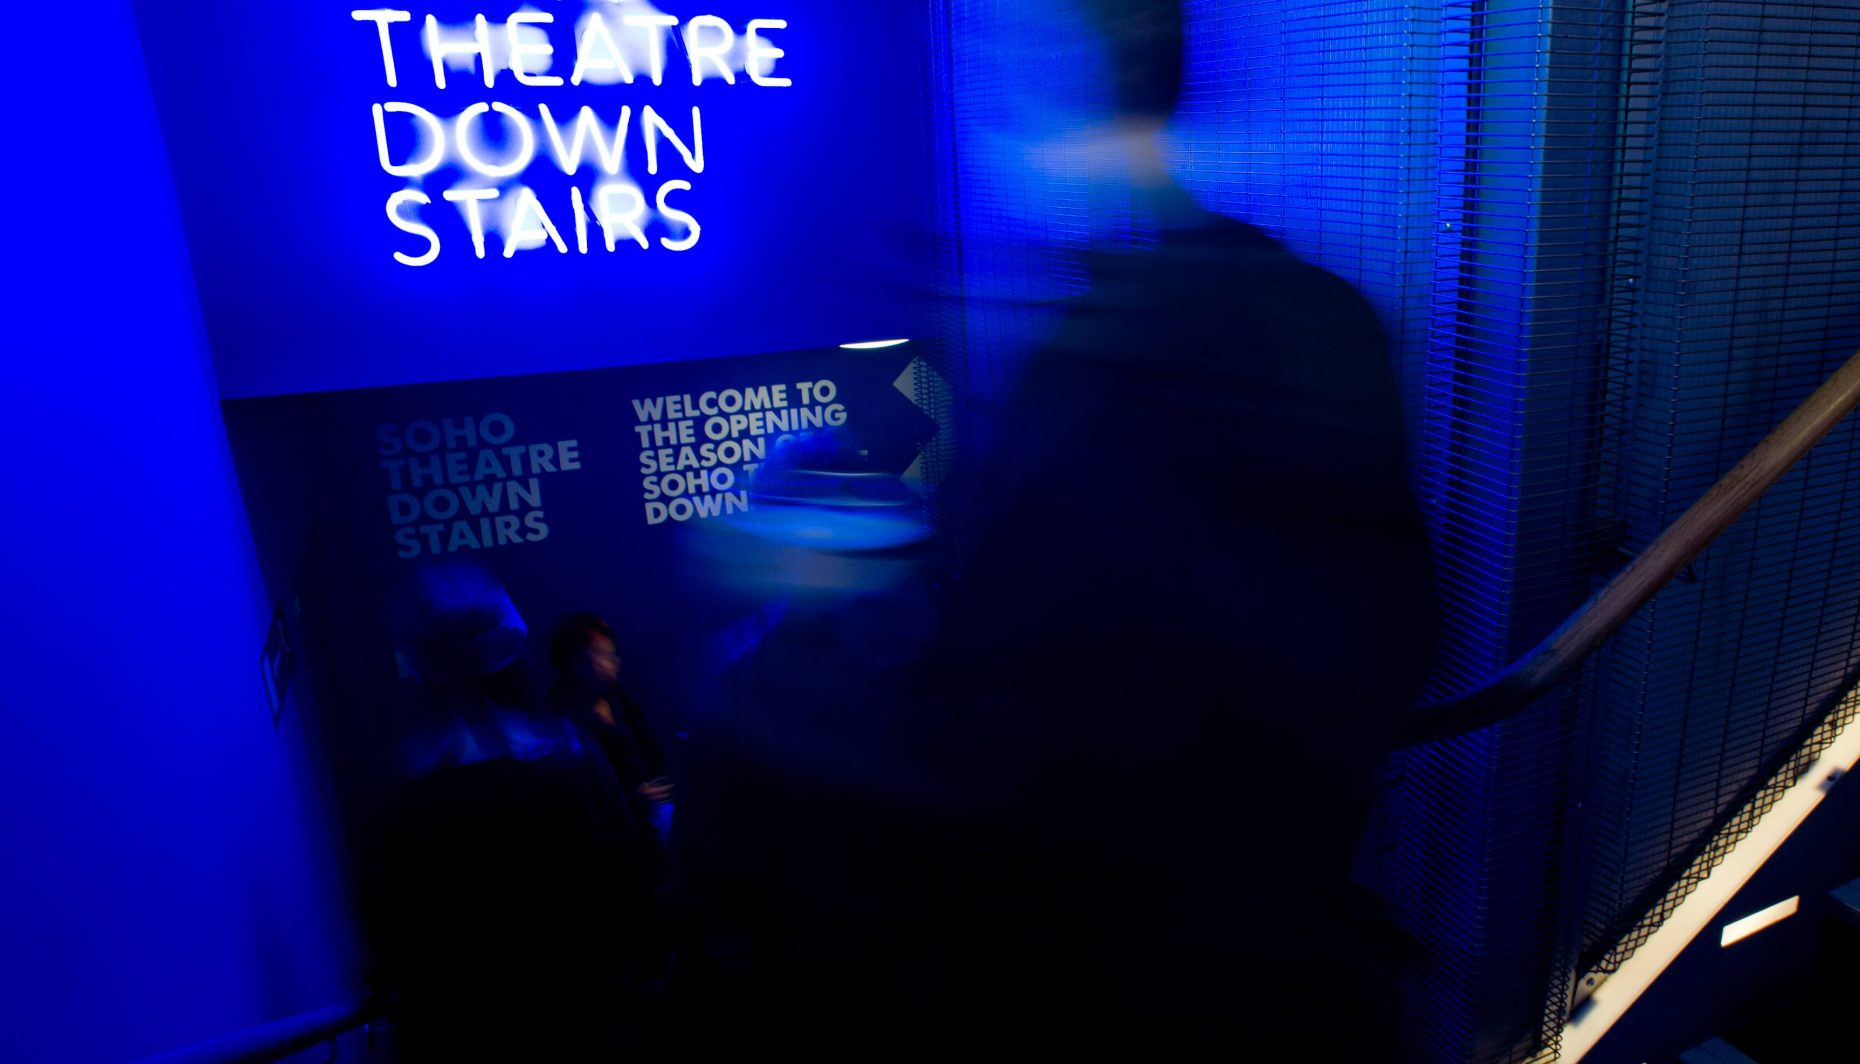 Soho Theatre Downstairs blue neon sign